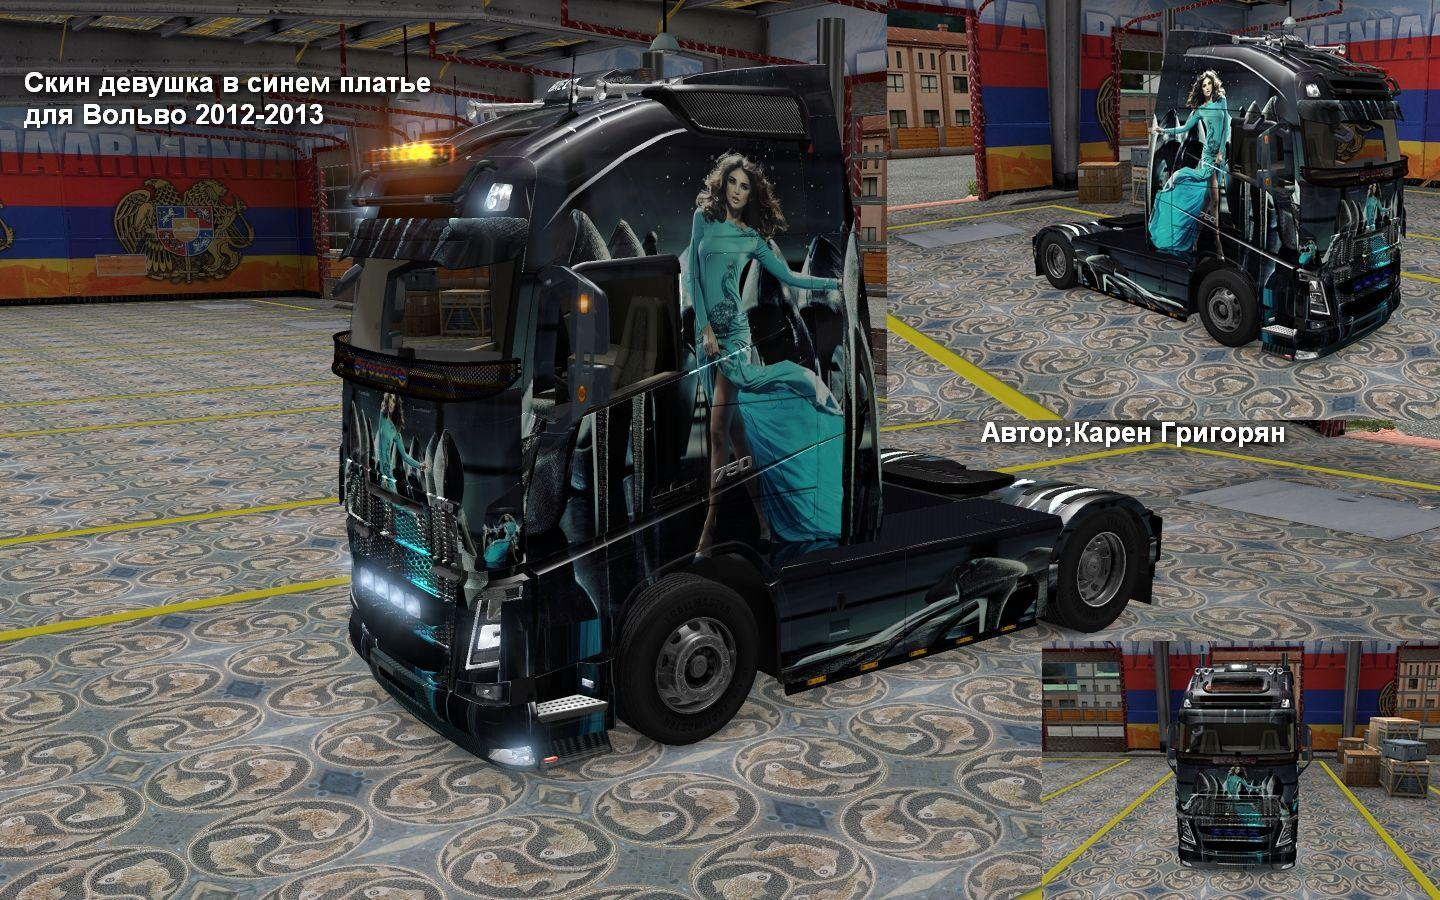 Iveco strator and volvo fh 2013 tuning euro truck simulator 2 mods - Blue Girl Skin 1 22 Mod Euro Truck Simulator 2 Mods